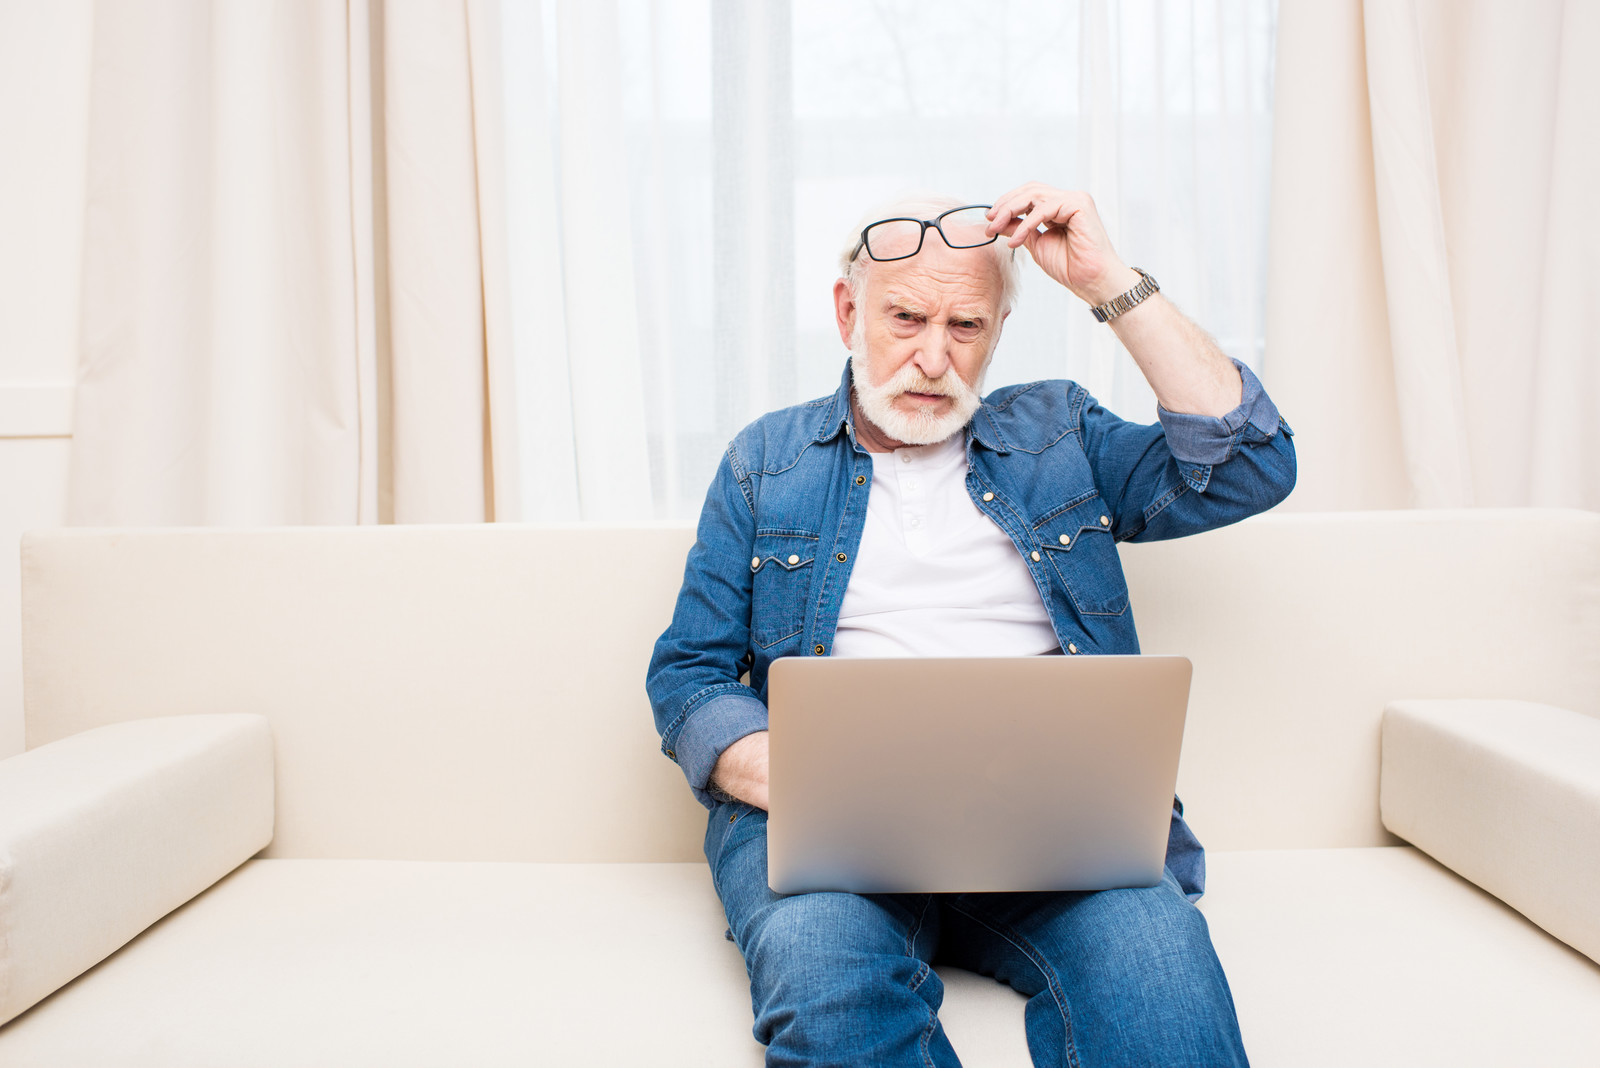 Senior man taking reading glasses off the top of his head, while sitting on couch with laptop looking upset